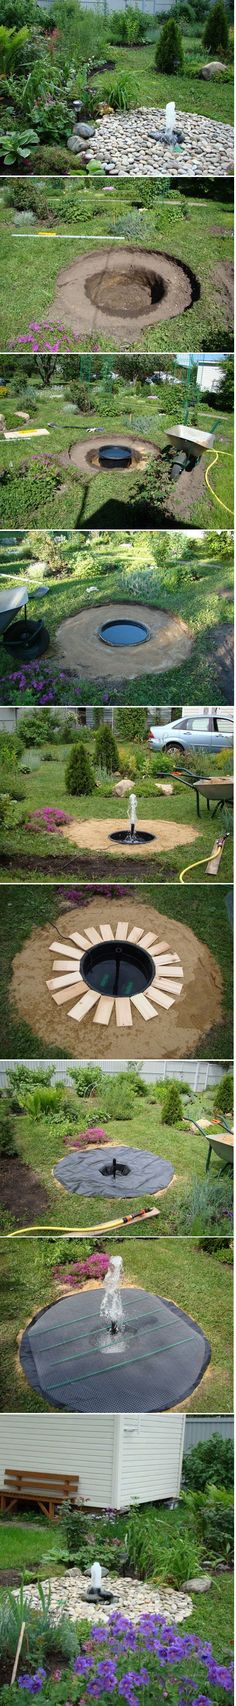 DIY Backyard Buried Fountain WATER FEATURES : More At FOSTERGINGER @ Pinterest